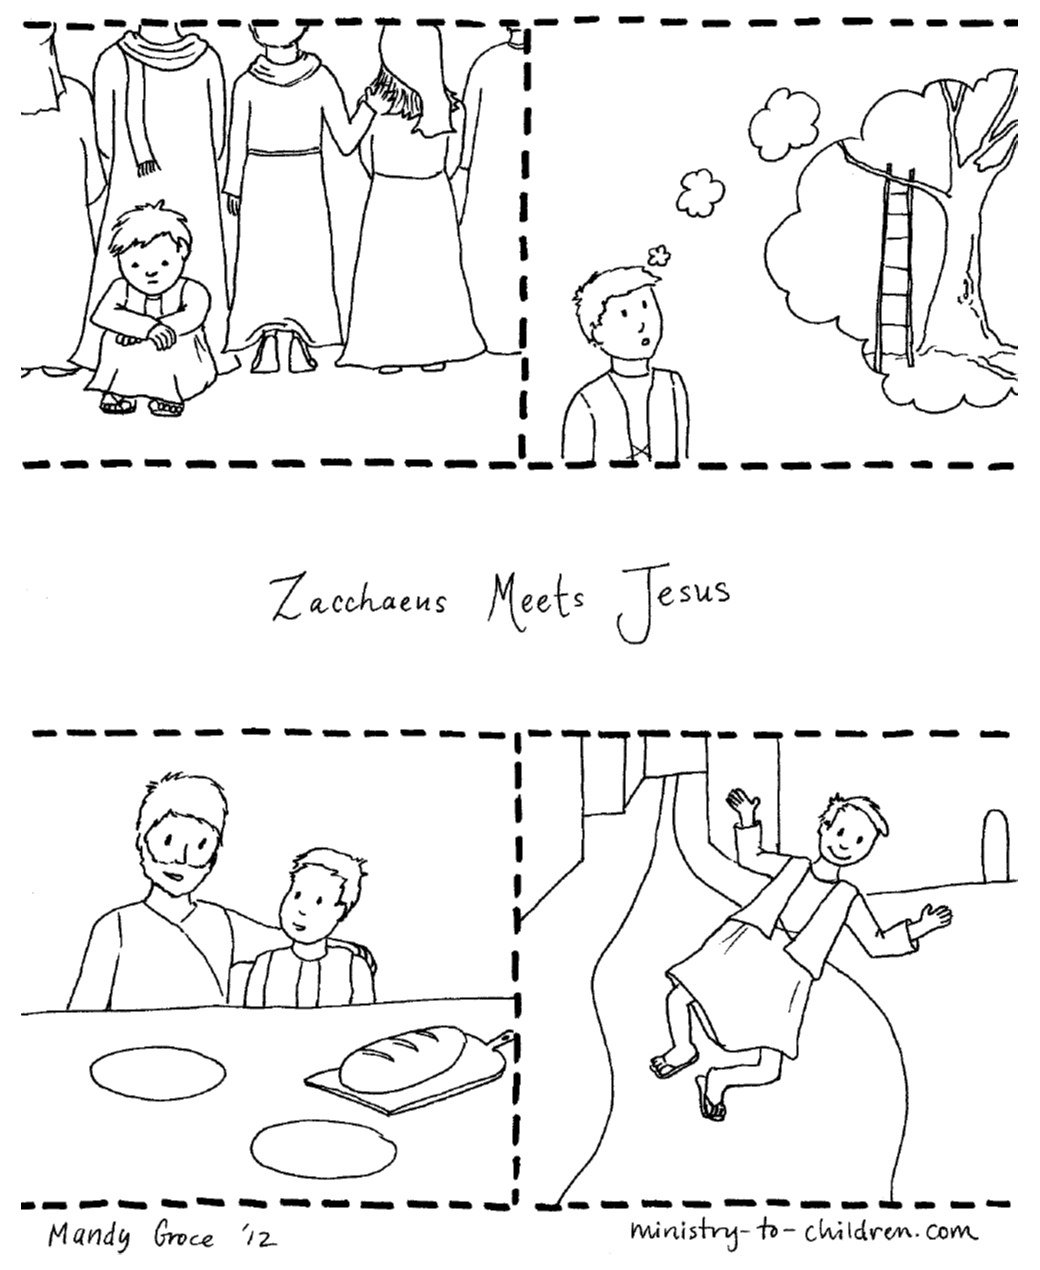 Zacchaeus Coloring Page Png 1 040 1 270 Pixeles Sunday School Coloring Pages Zacchaeus Preschool Bible Lessons